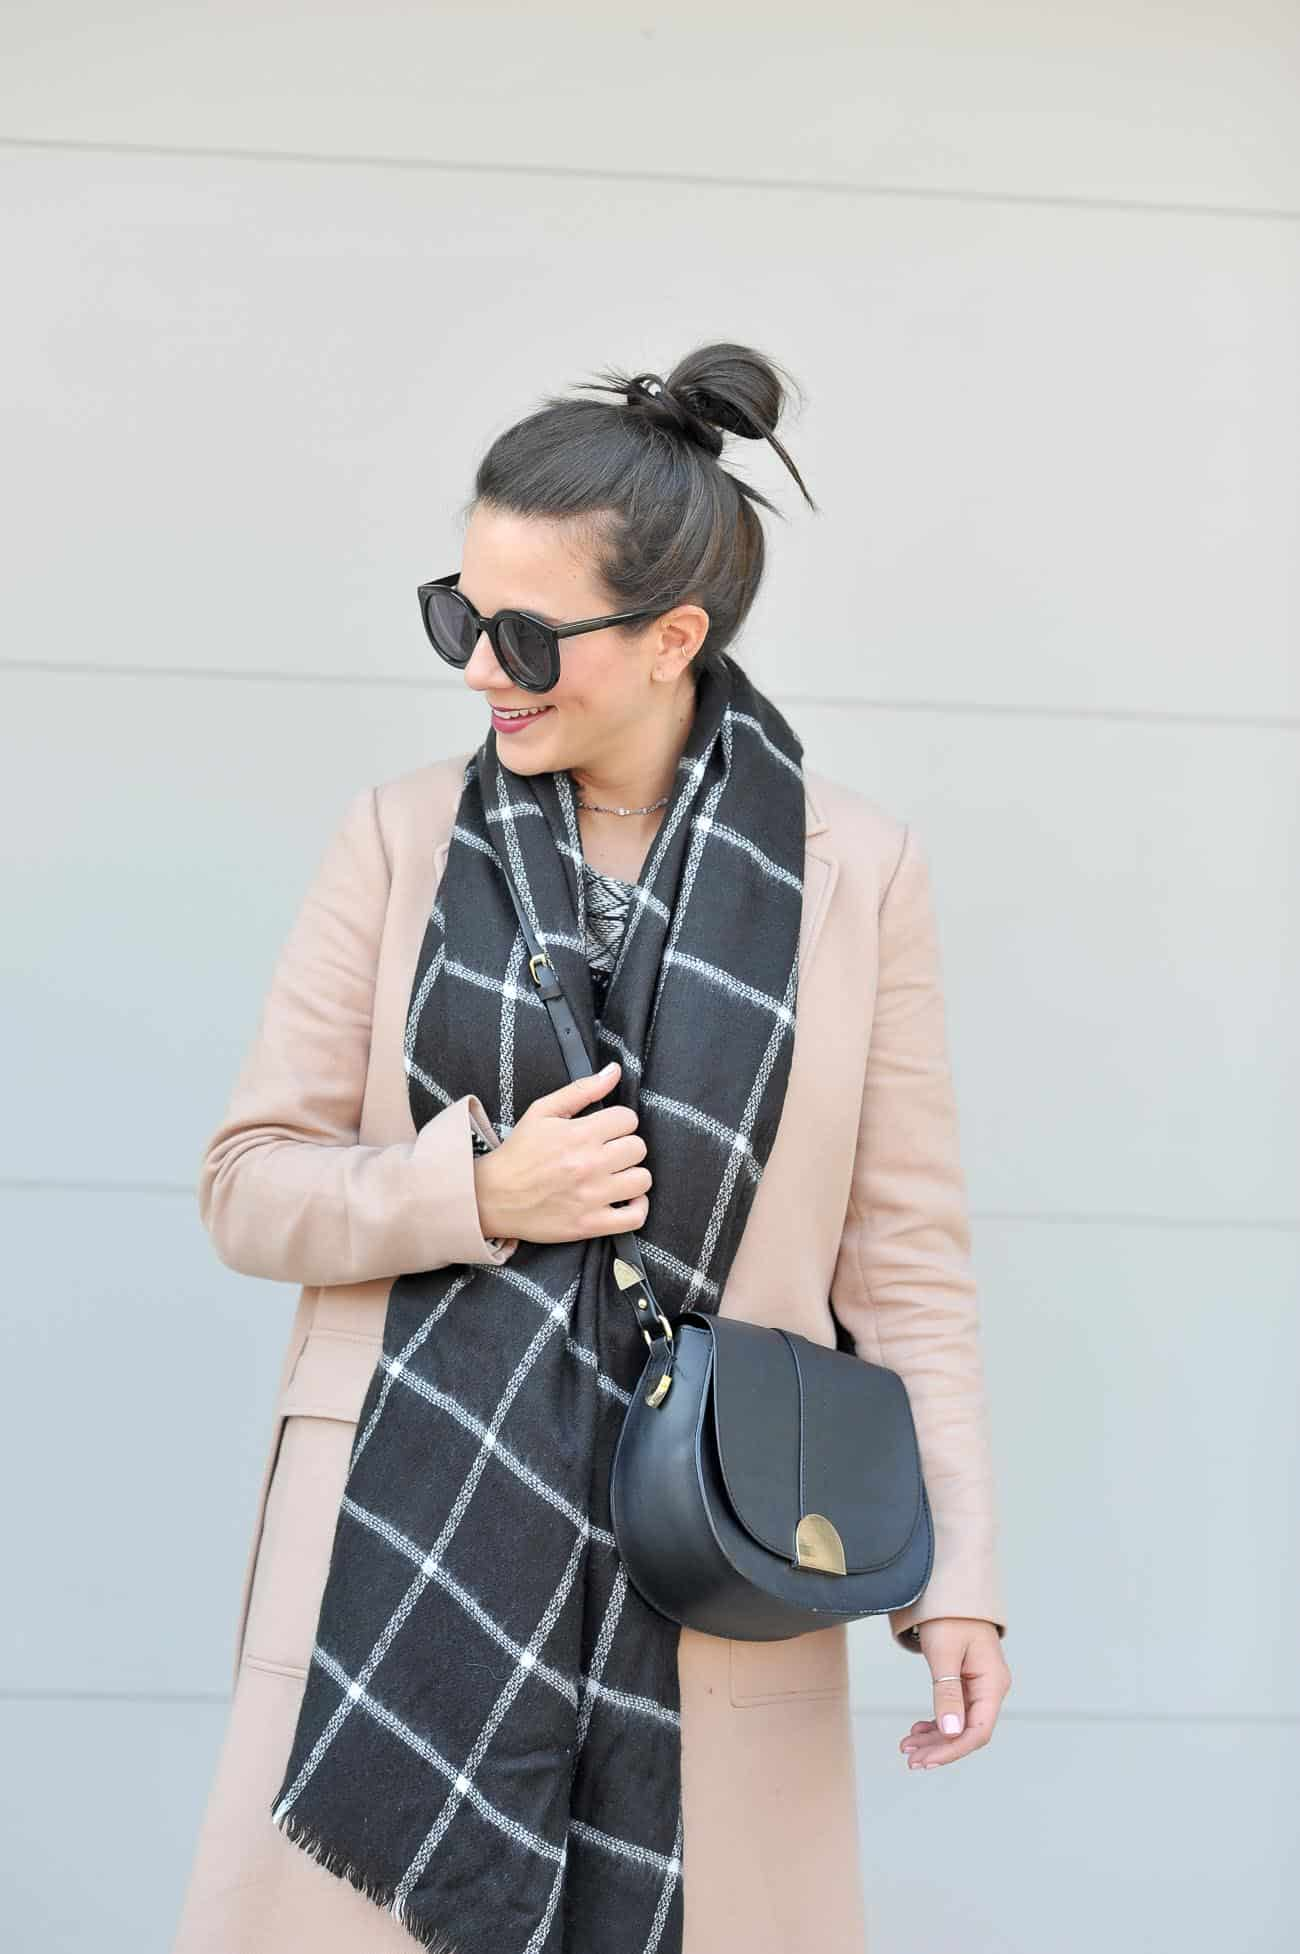 layered-winter-outfits-how-to-style-a-camel-coat-blanket-scarf-casual-affordable-weekend-style-my-style-vita-mystylevita-28-of-31